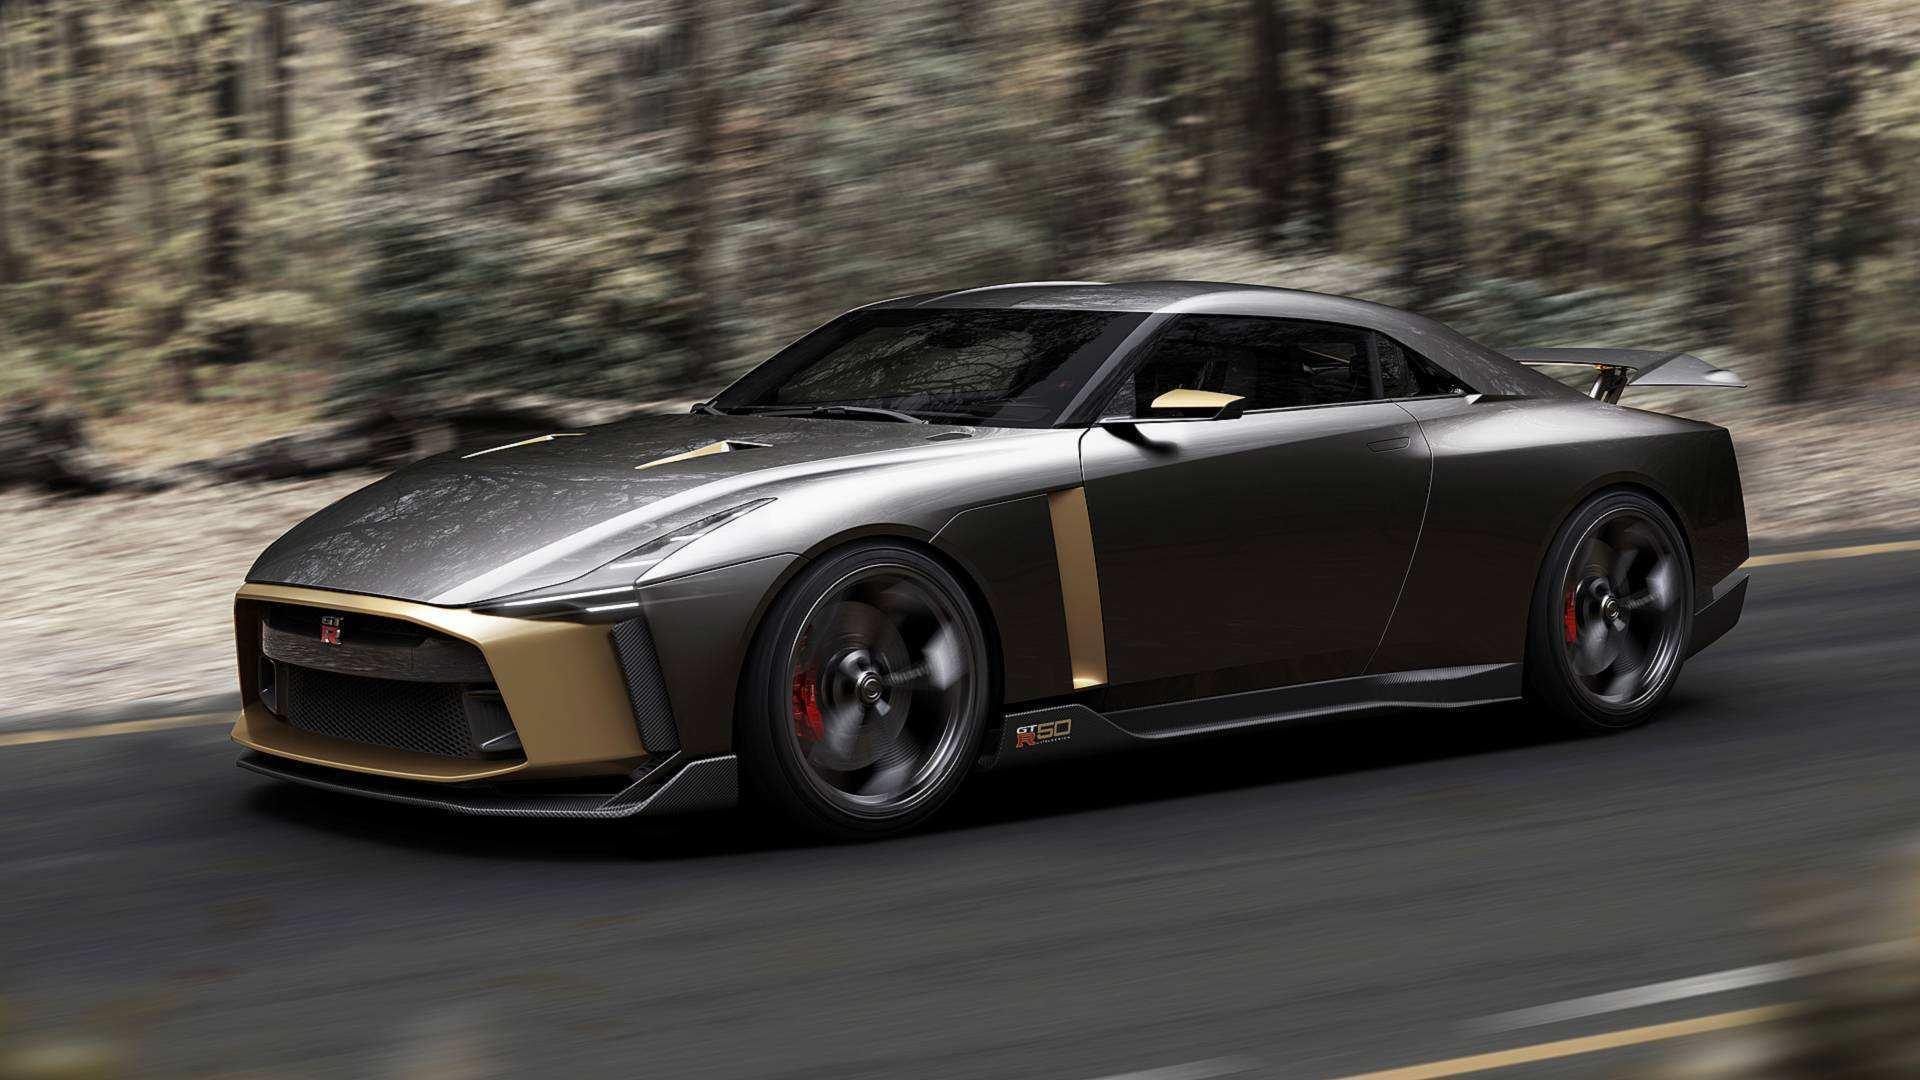 34 All New Nissan Gtr 2019 Top Speed Redesign